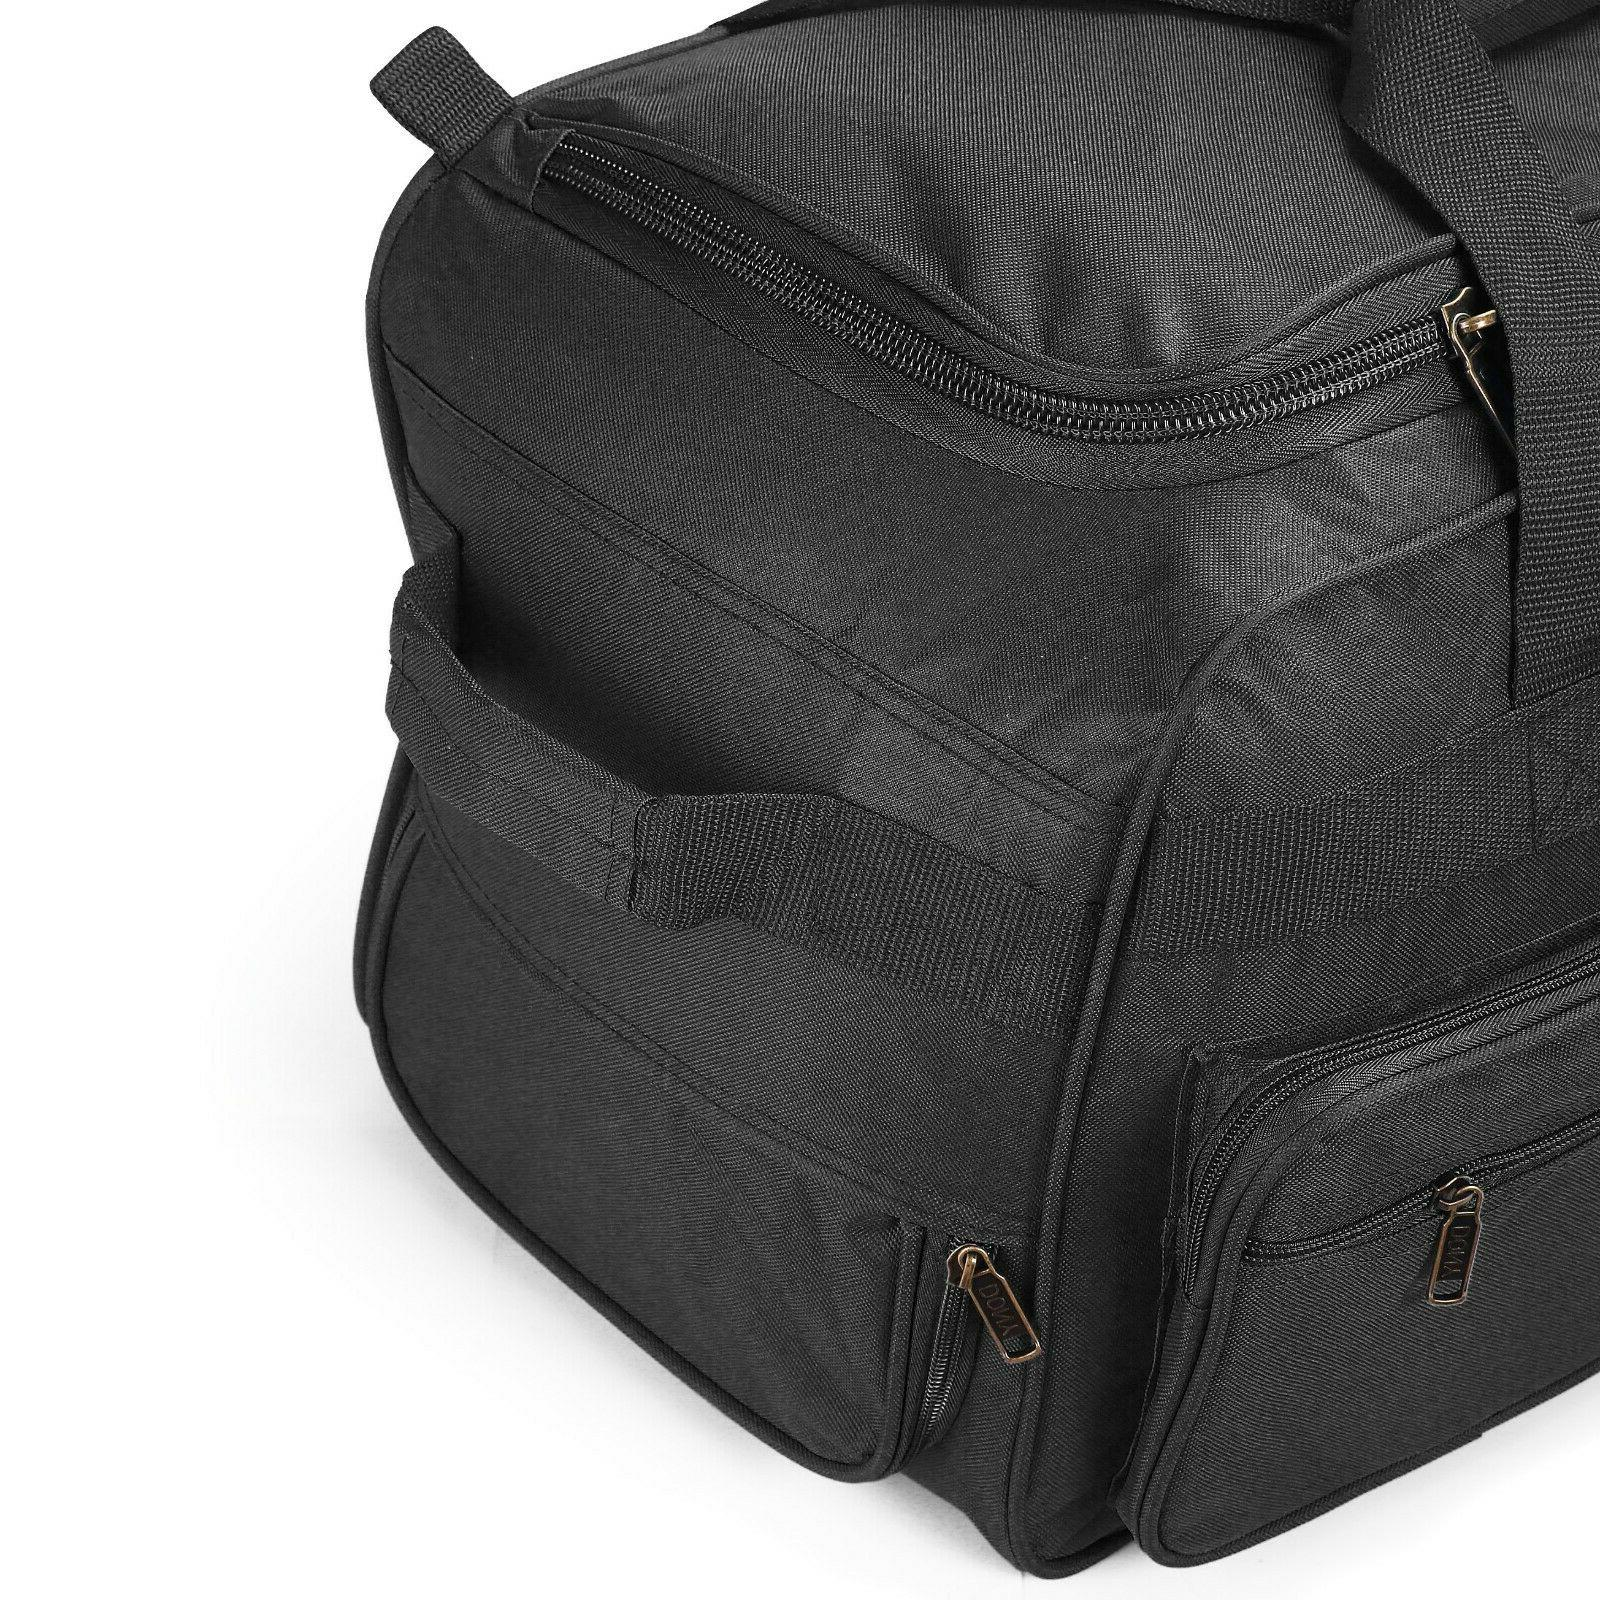 Rolling Carry OnSuitcase